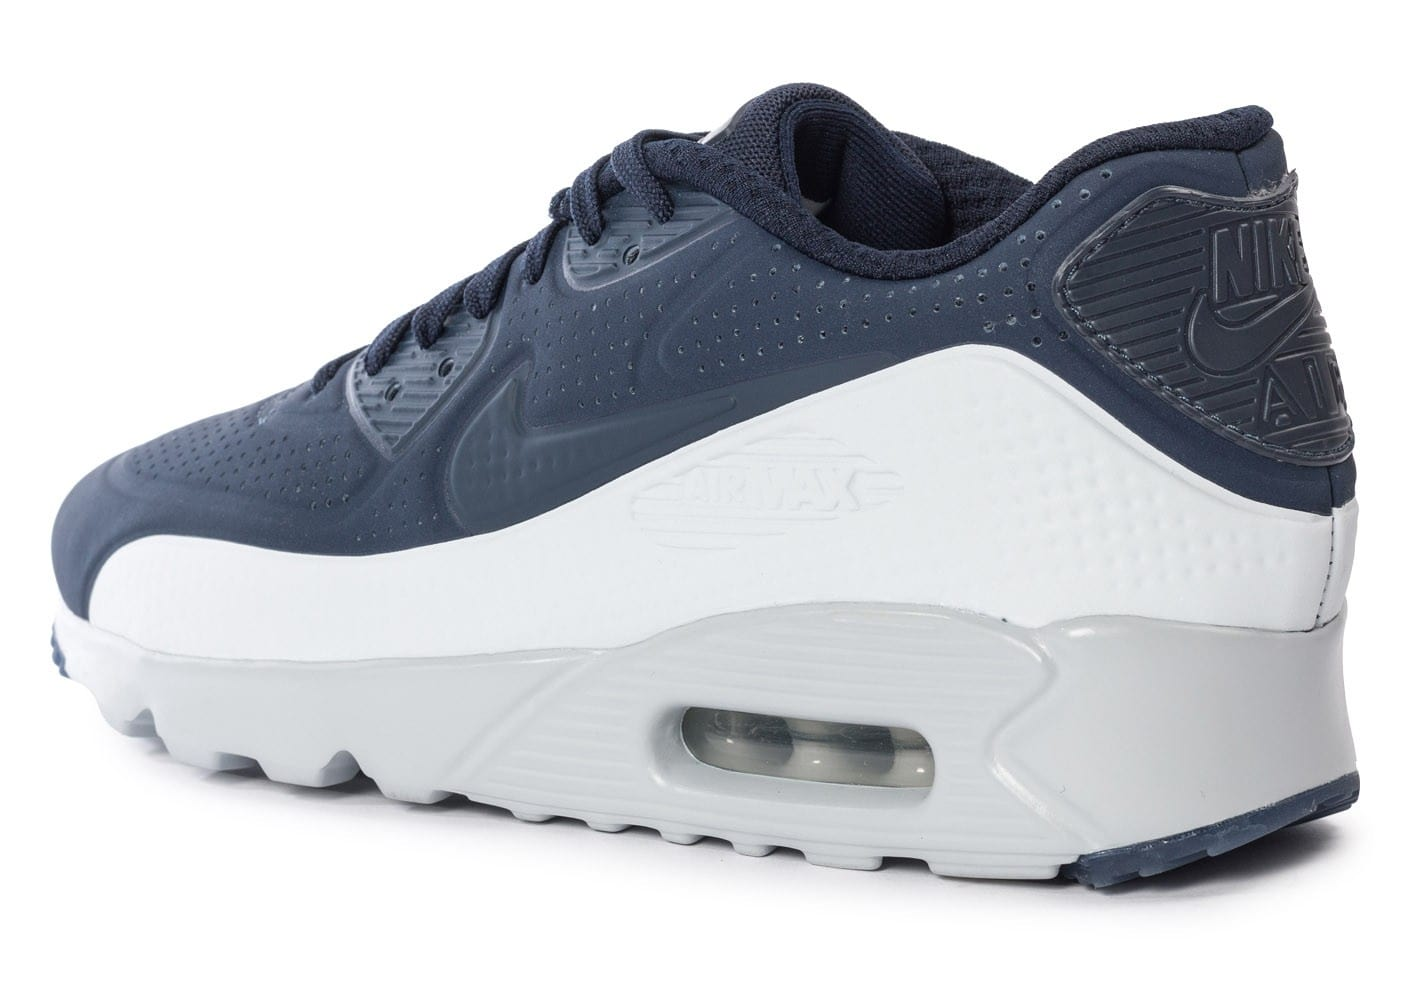 huge selection of 57a02 13f39 ... Chaussures Nike Air Max 90 Ultra Moire Obsidian vue avant ...